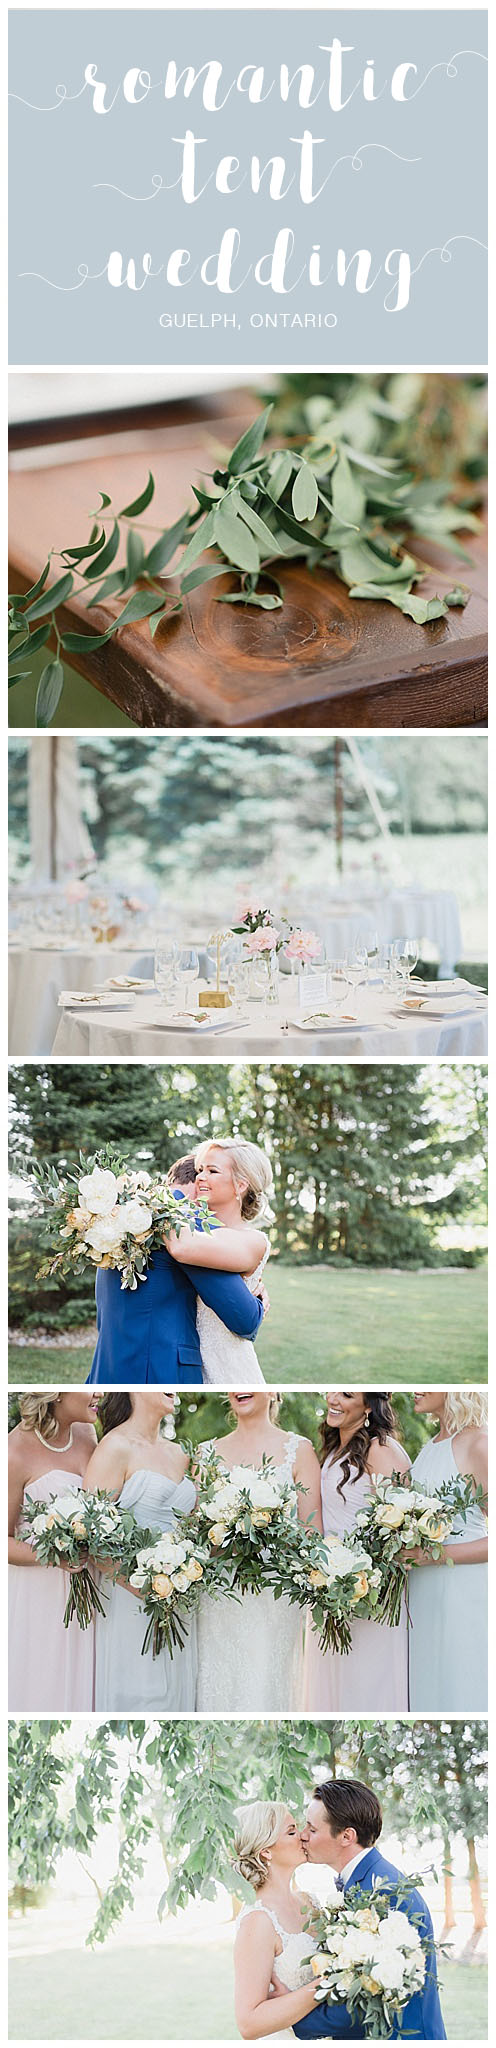 Romantic Tent Wedding on Family Farm in Guelph Ontario by Jenn Kavanagh Photography